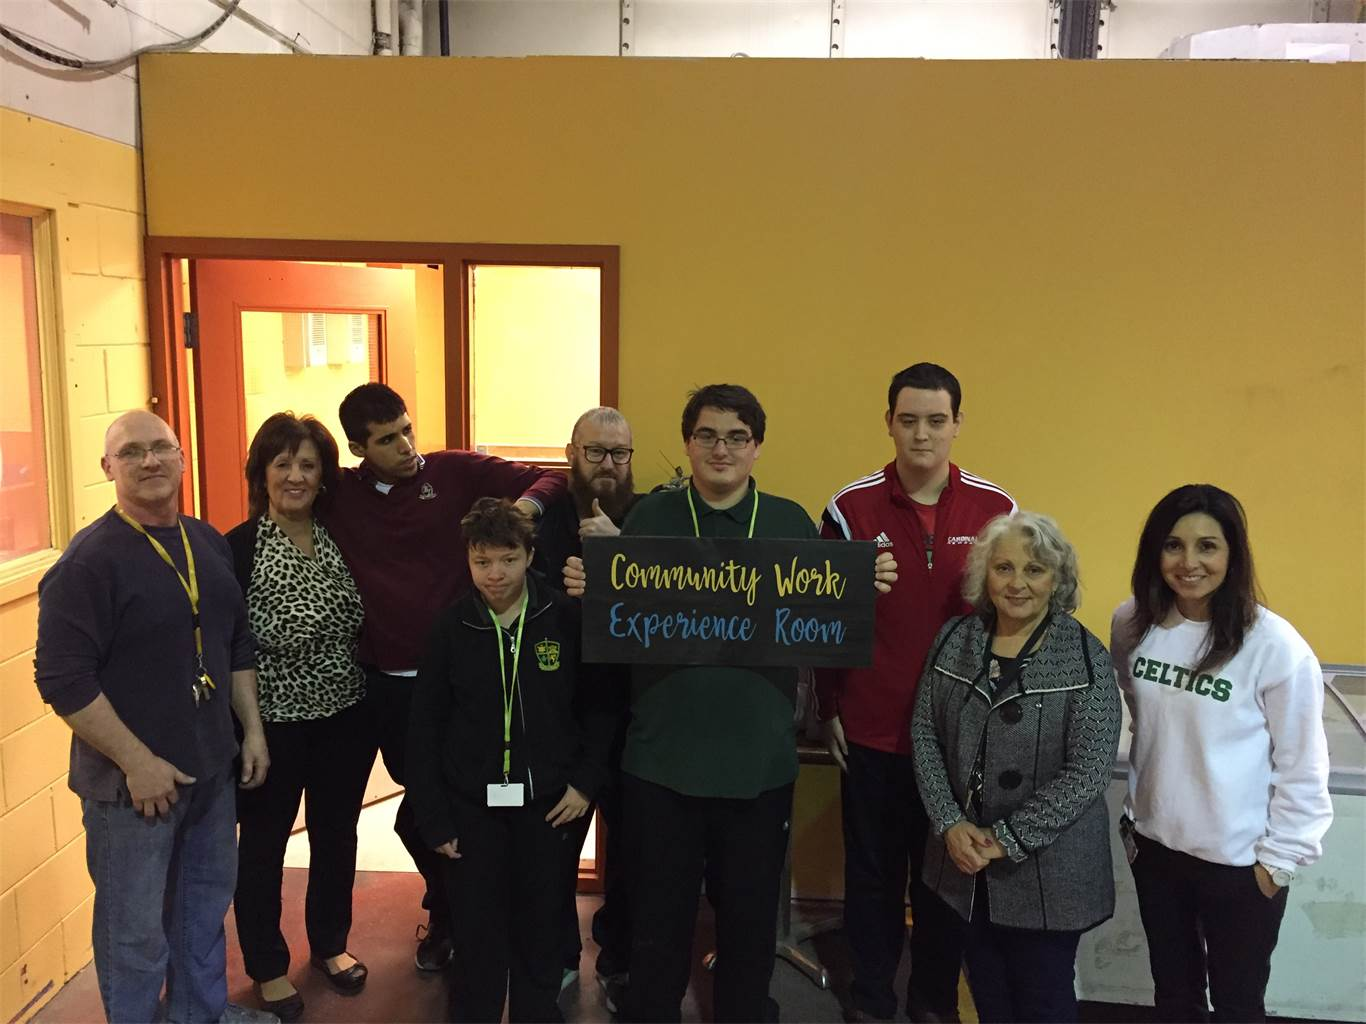 BR students name new room at Good Shepherd